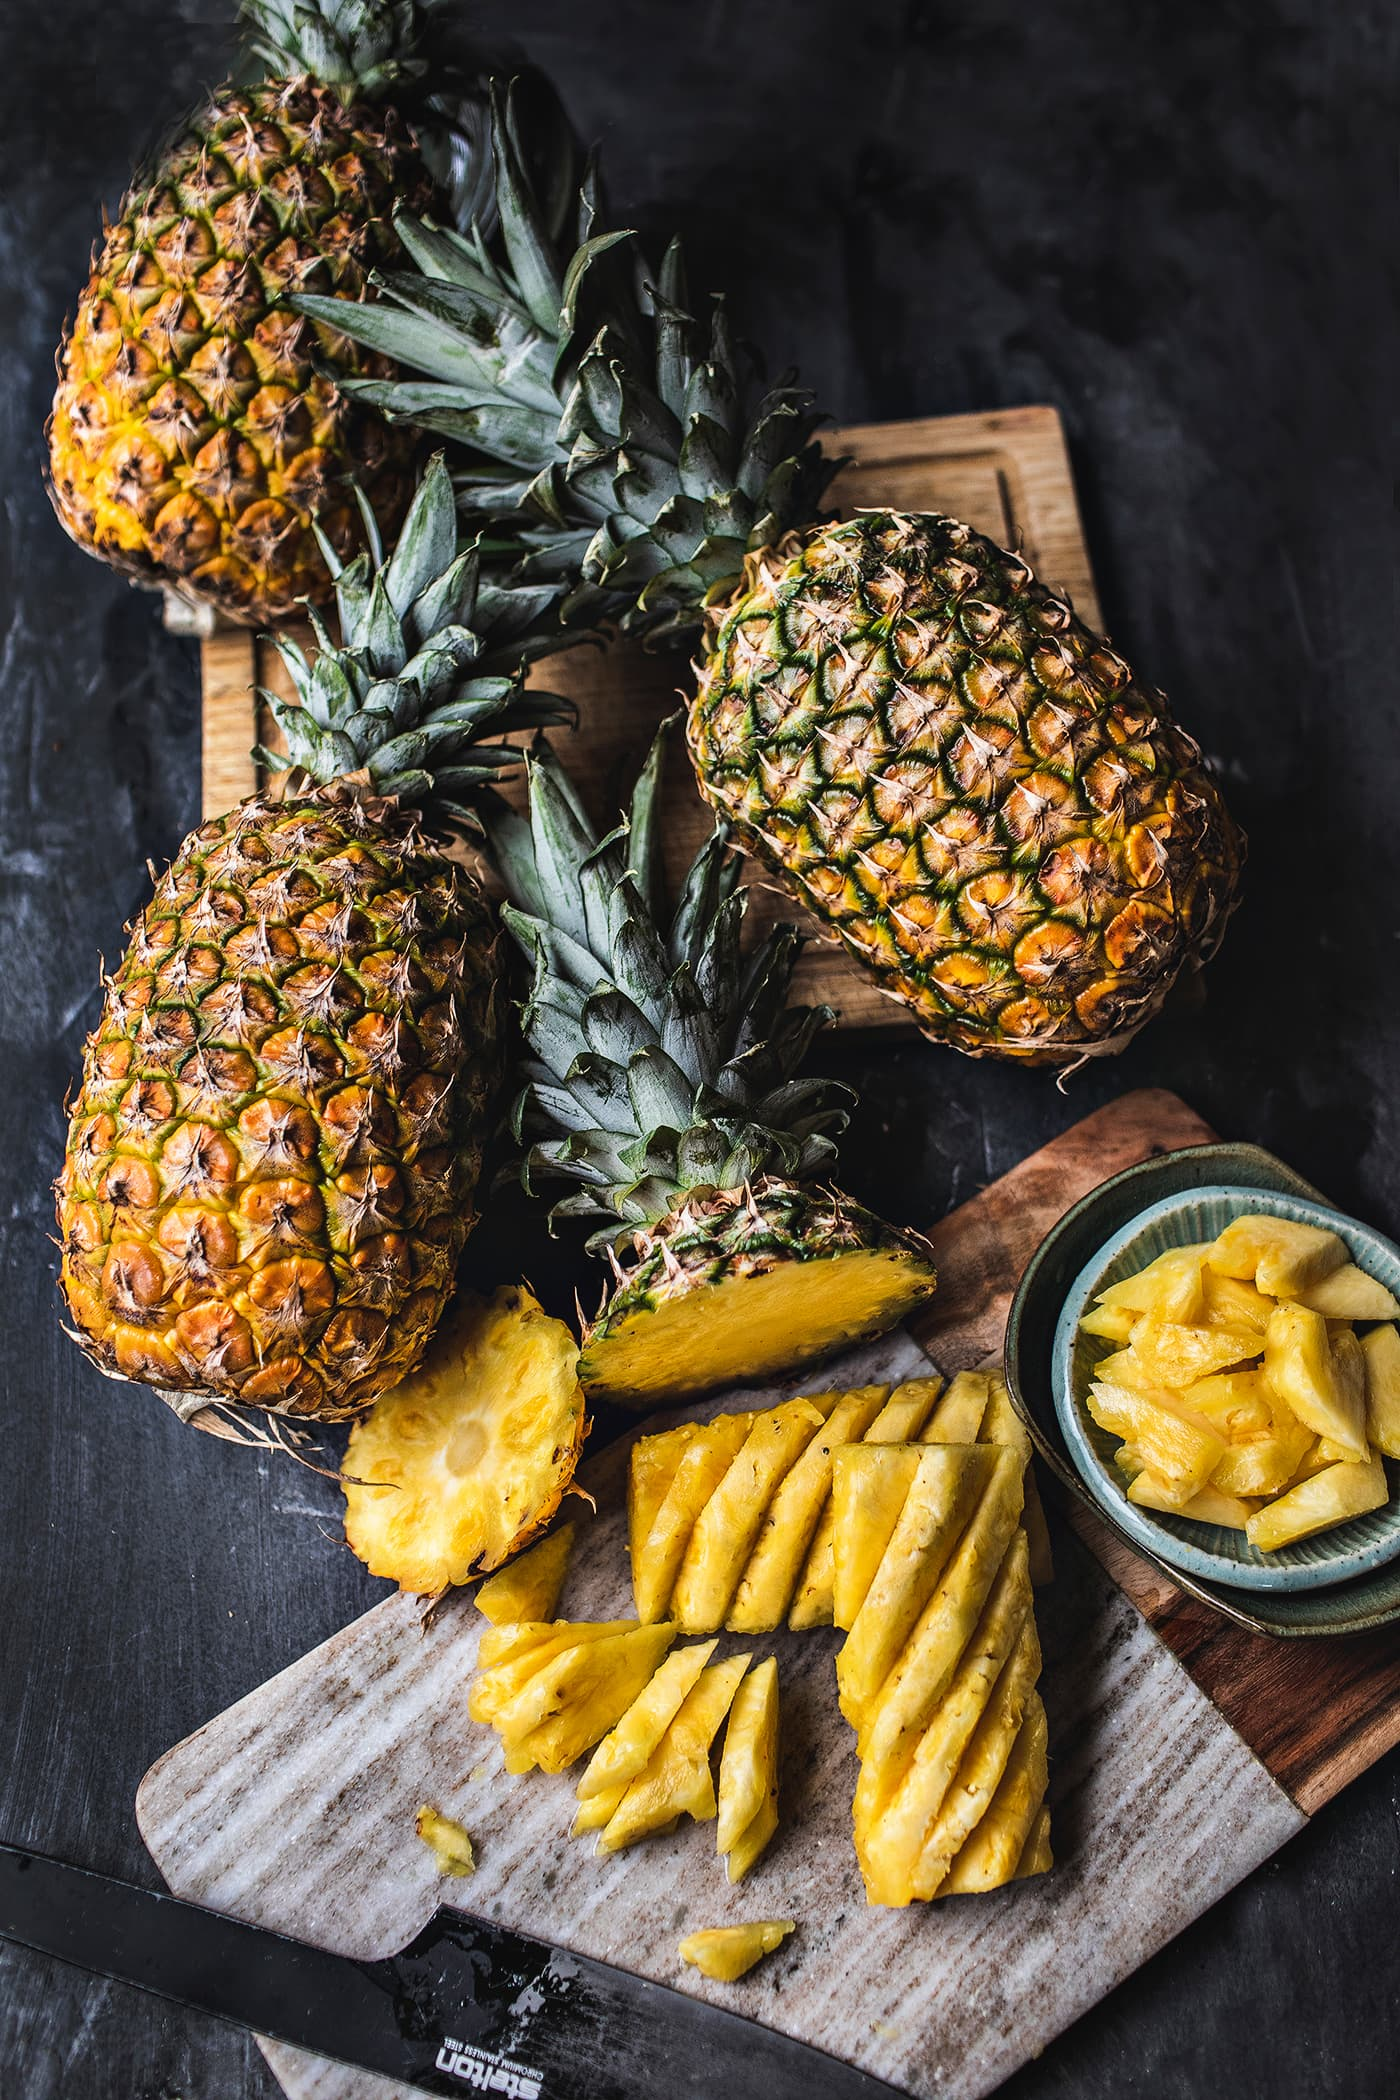 Do you love pineapples but have always been intimidated by how to cut them? Today, I'm going to show you, step by step with helpful photo instructions, how to cut a pineapple, AND how to to make a pineapple bowl! Get ready to be an expert at cutting your favorite fruit.#pineapples #howtocutpineapple #cuttingpineapple #pineapplecutting